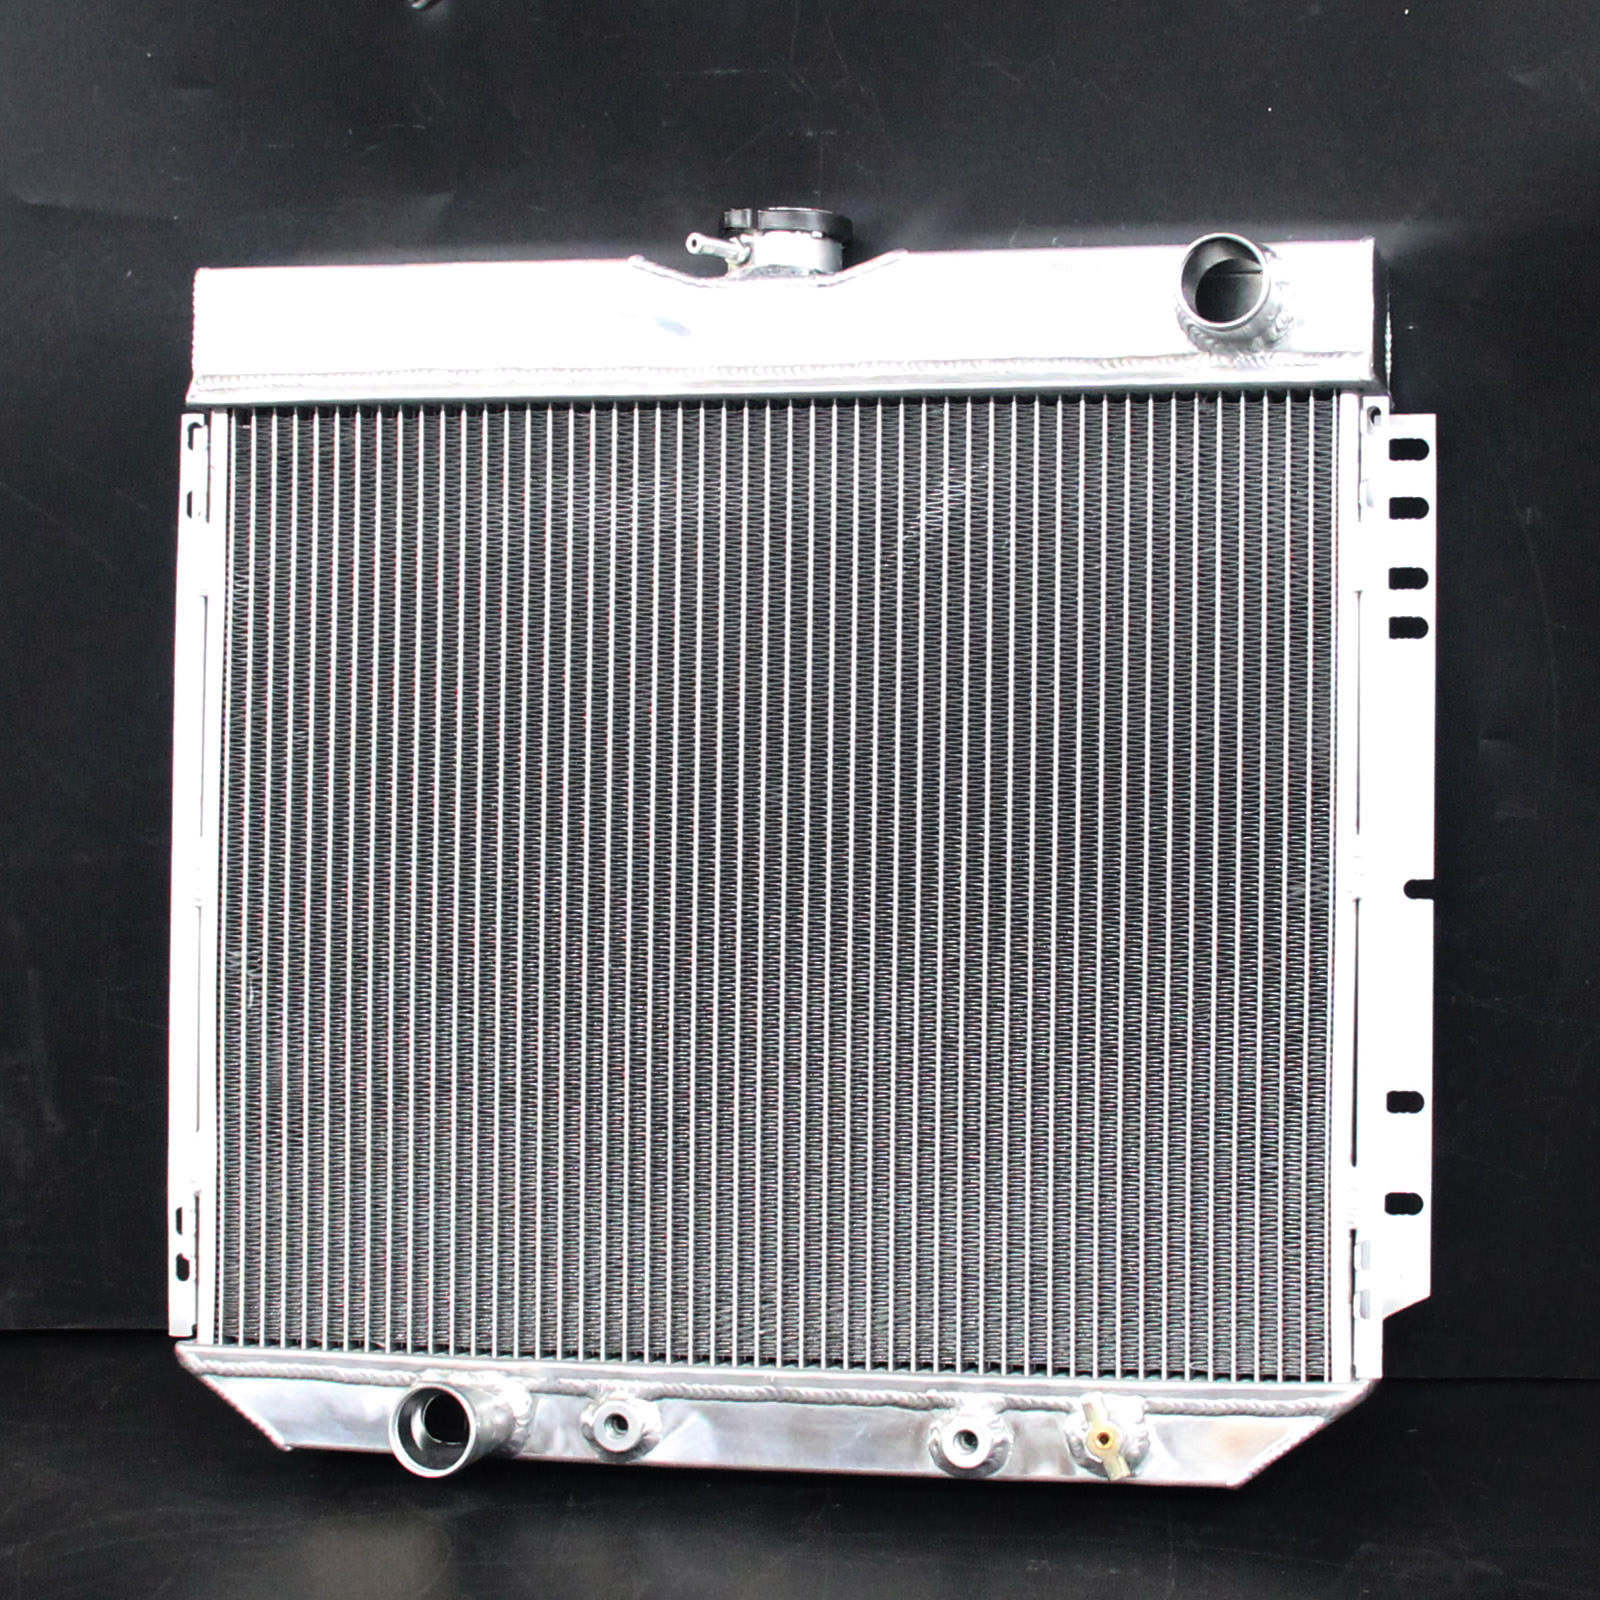 ALL POLISHED ALUMINUM RADIATOR 69 70-77 FORD Mustang cars 4.1L 5.0L